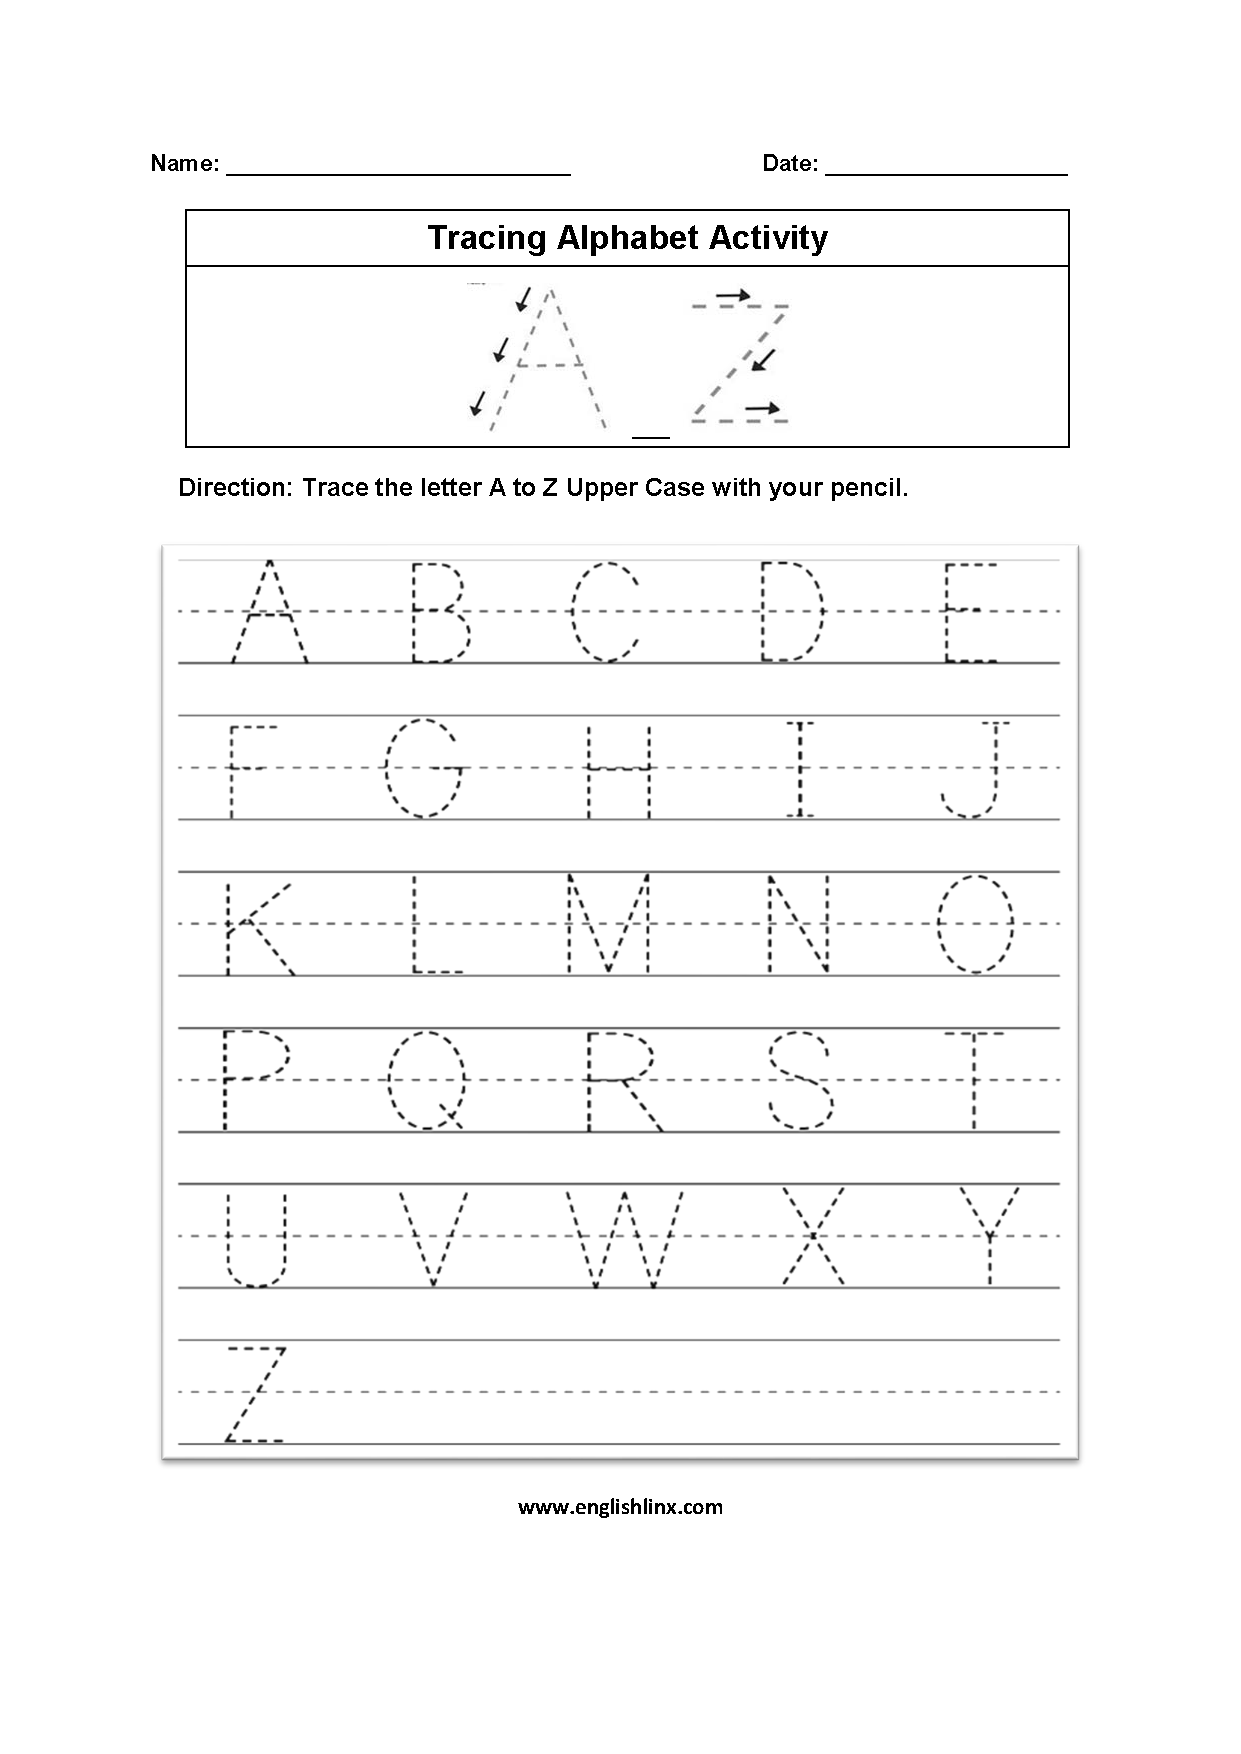 A To Z Alphabet Worksheets Pdf لم يسبق له مثيل الصور + Tier3.xyz